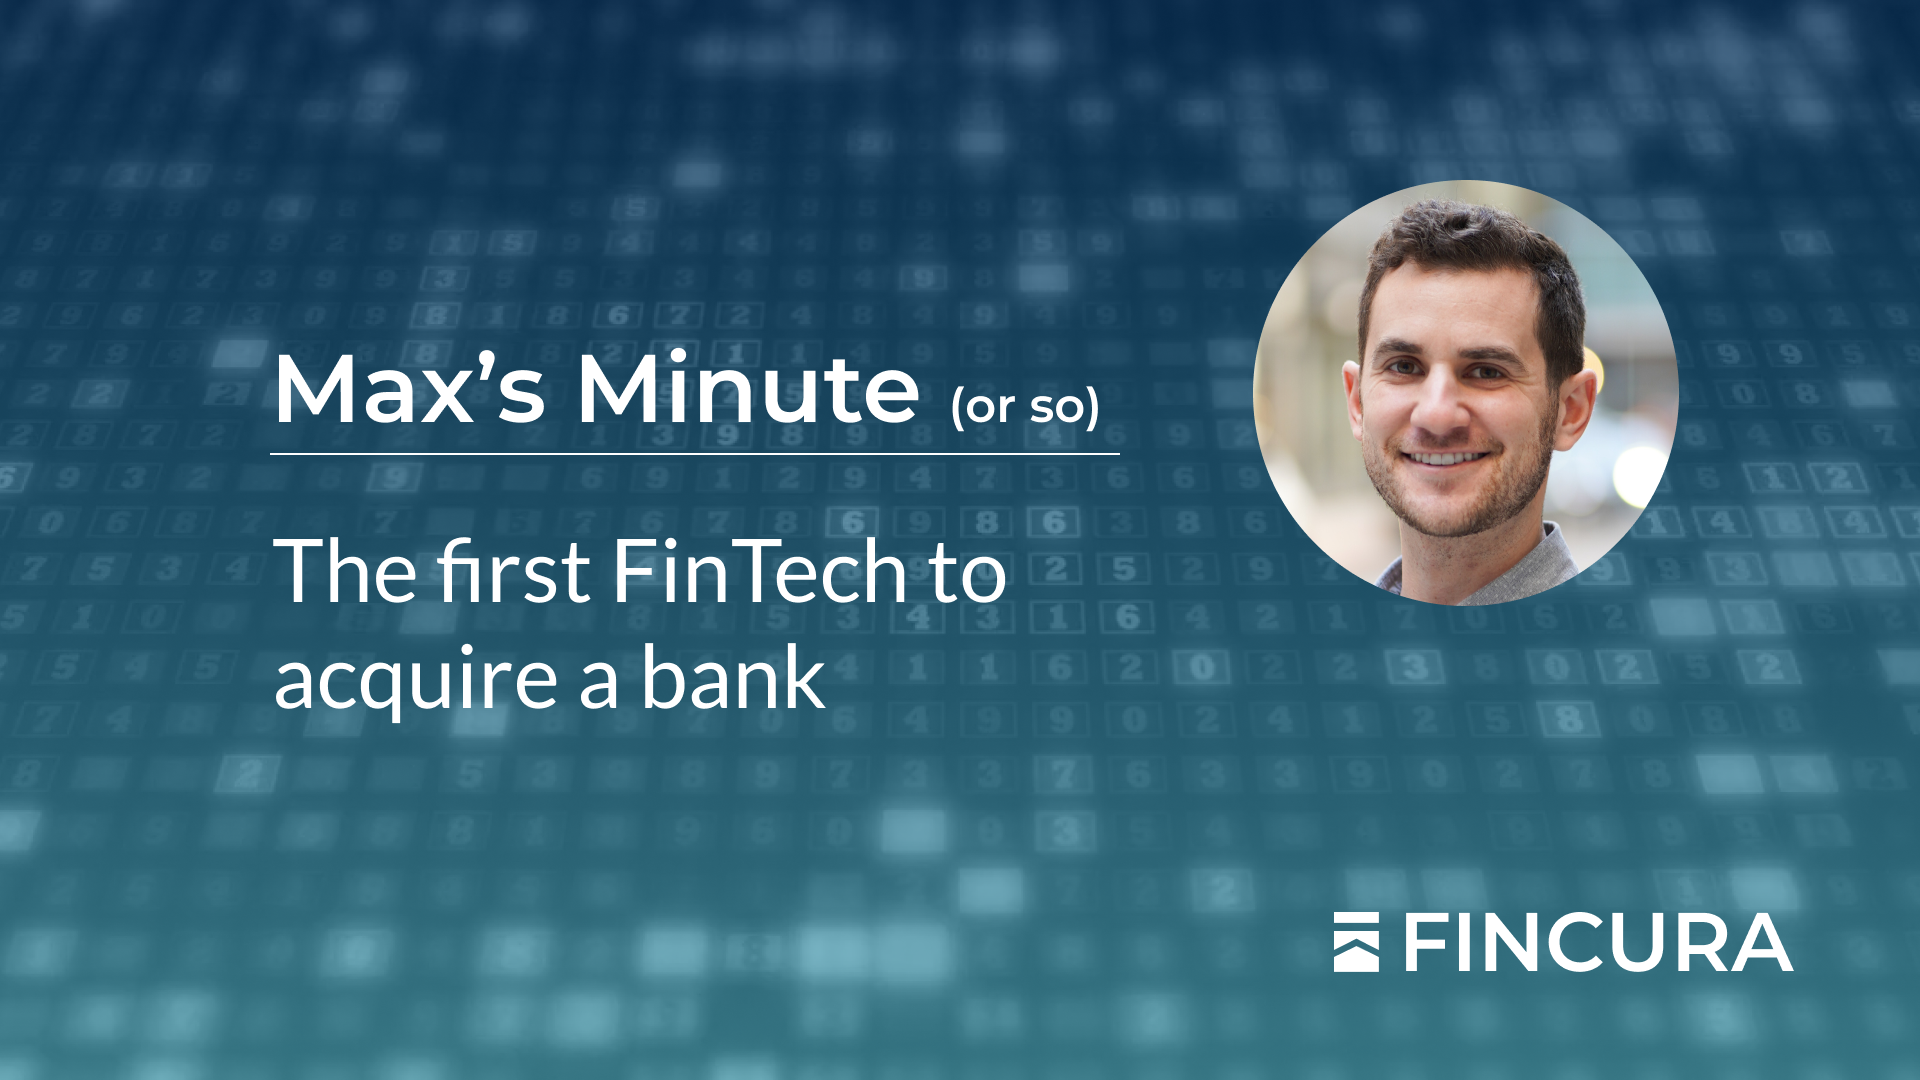 Fincura | The first FinTech to acquire a bank